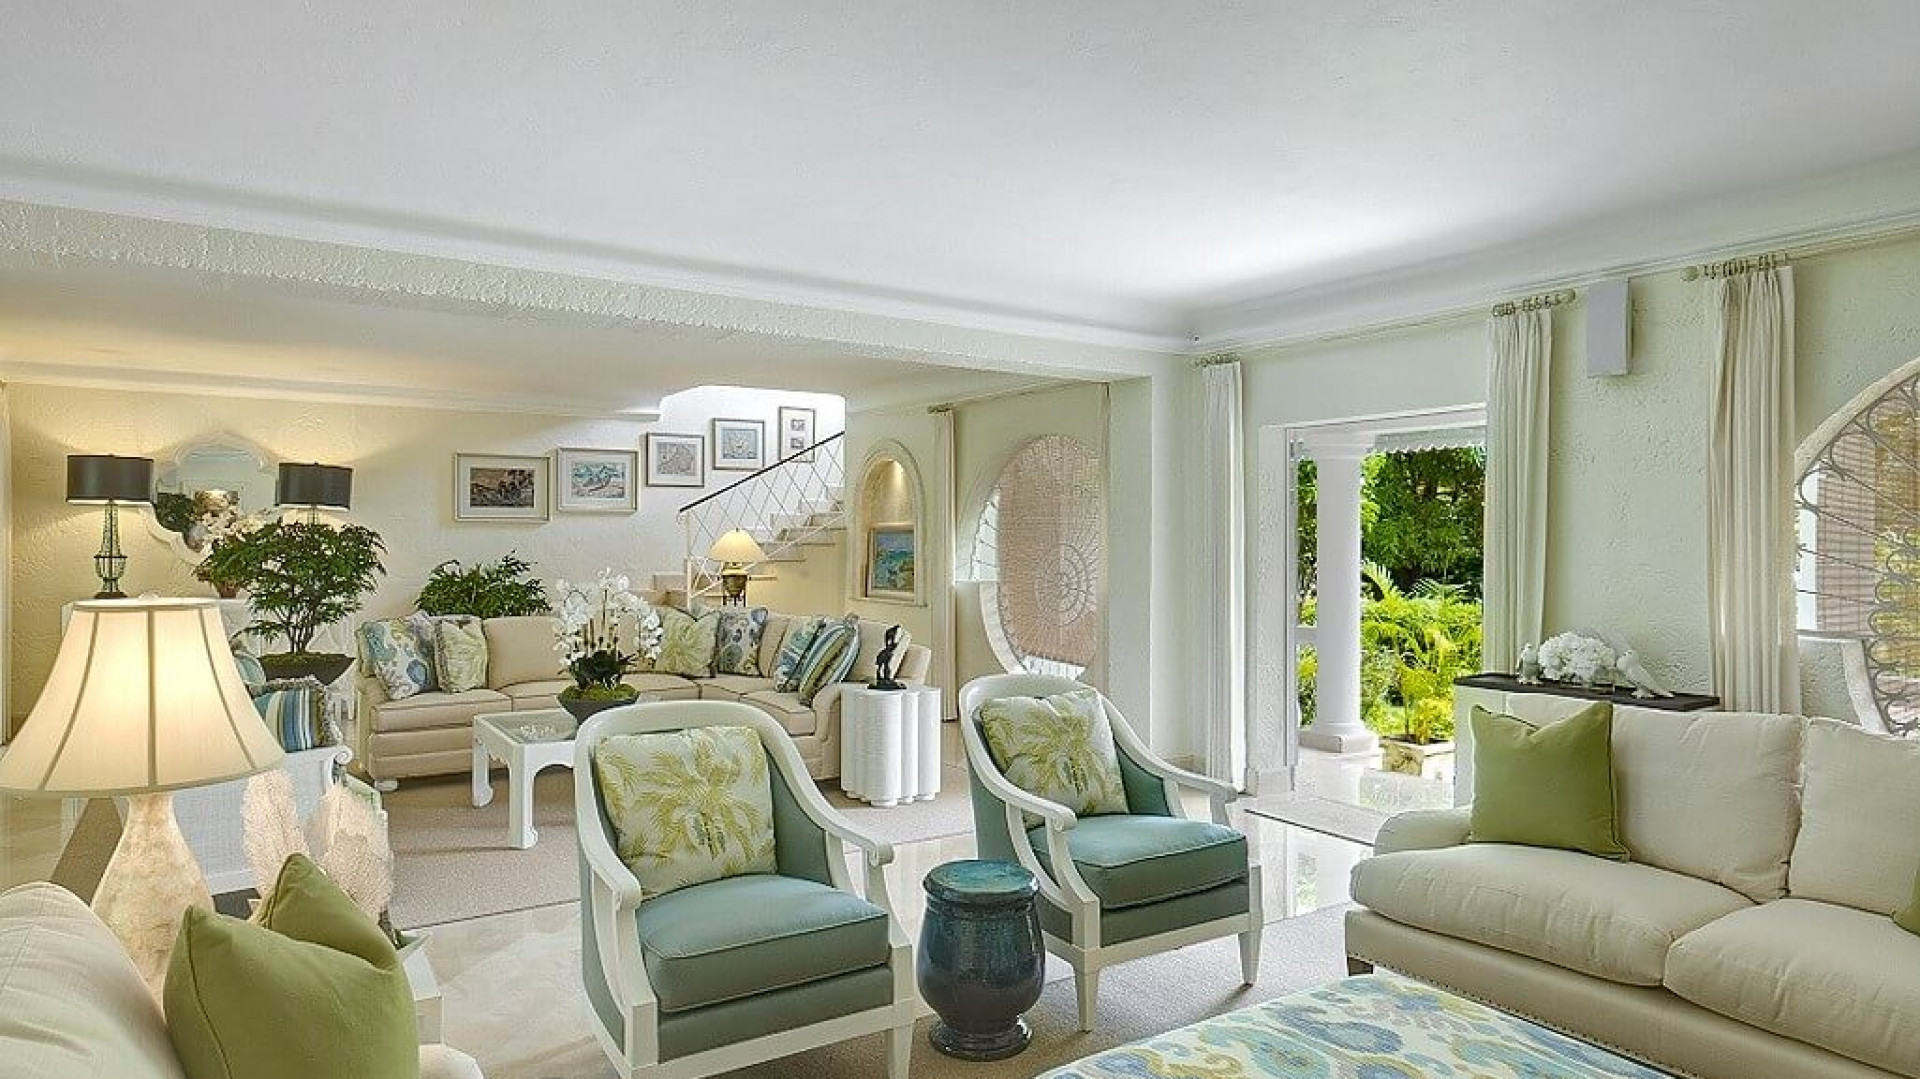 White and GReen Floral Lounge 8 Bedroom Beachfront Villa in St James with Speed Boat & Private Pool